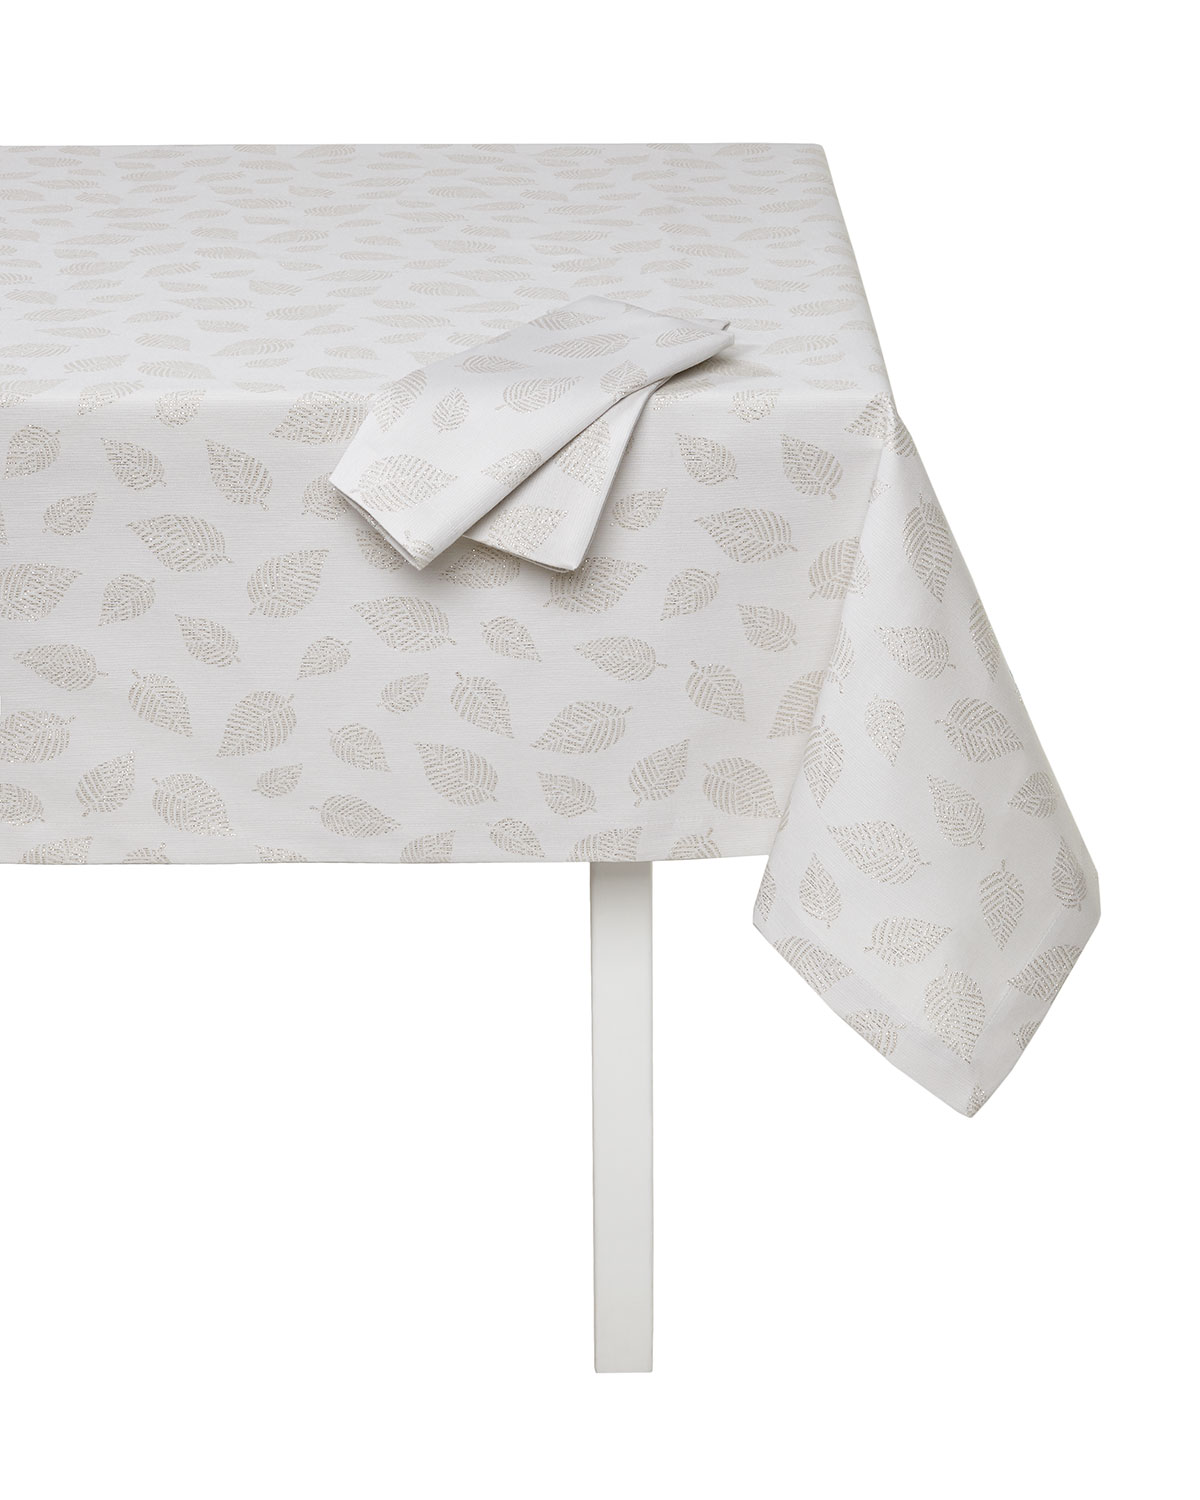 """Ivy Tablecloth with Metallic Leaves, 66"""" x 128"""""""